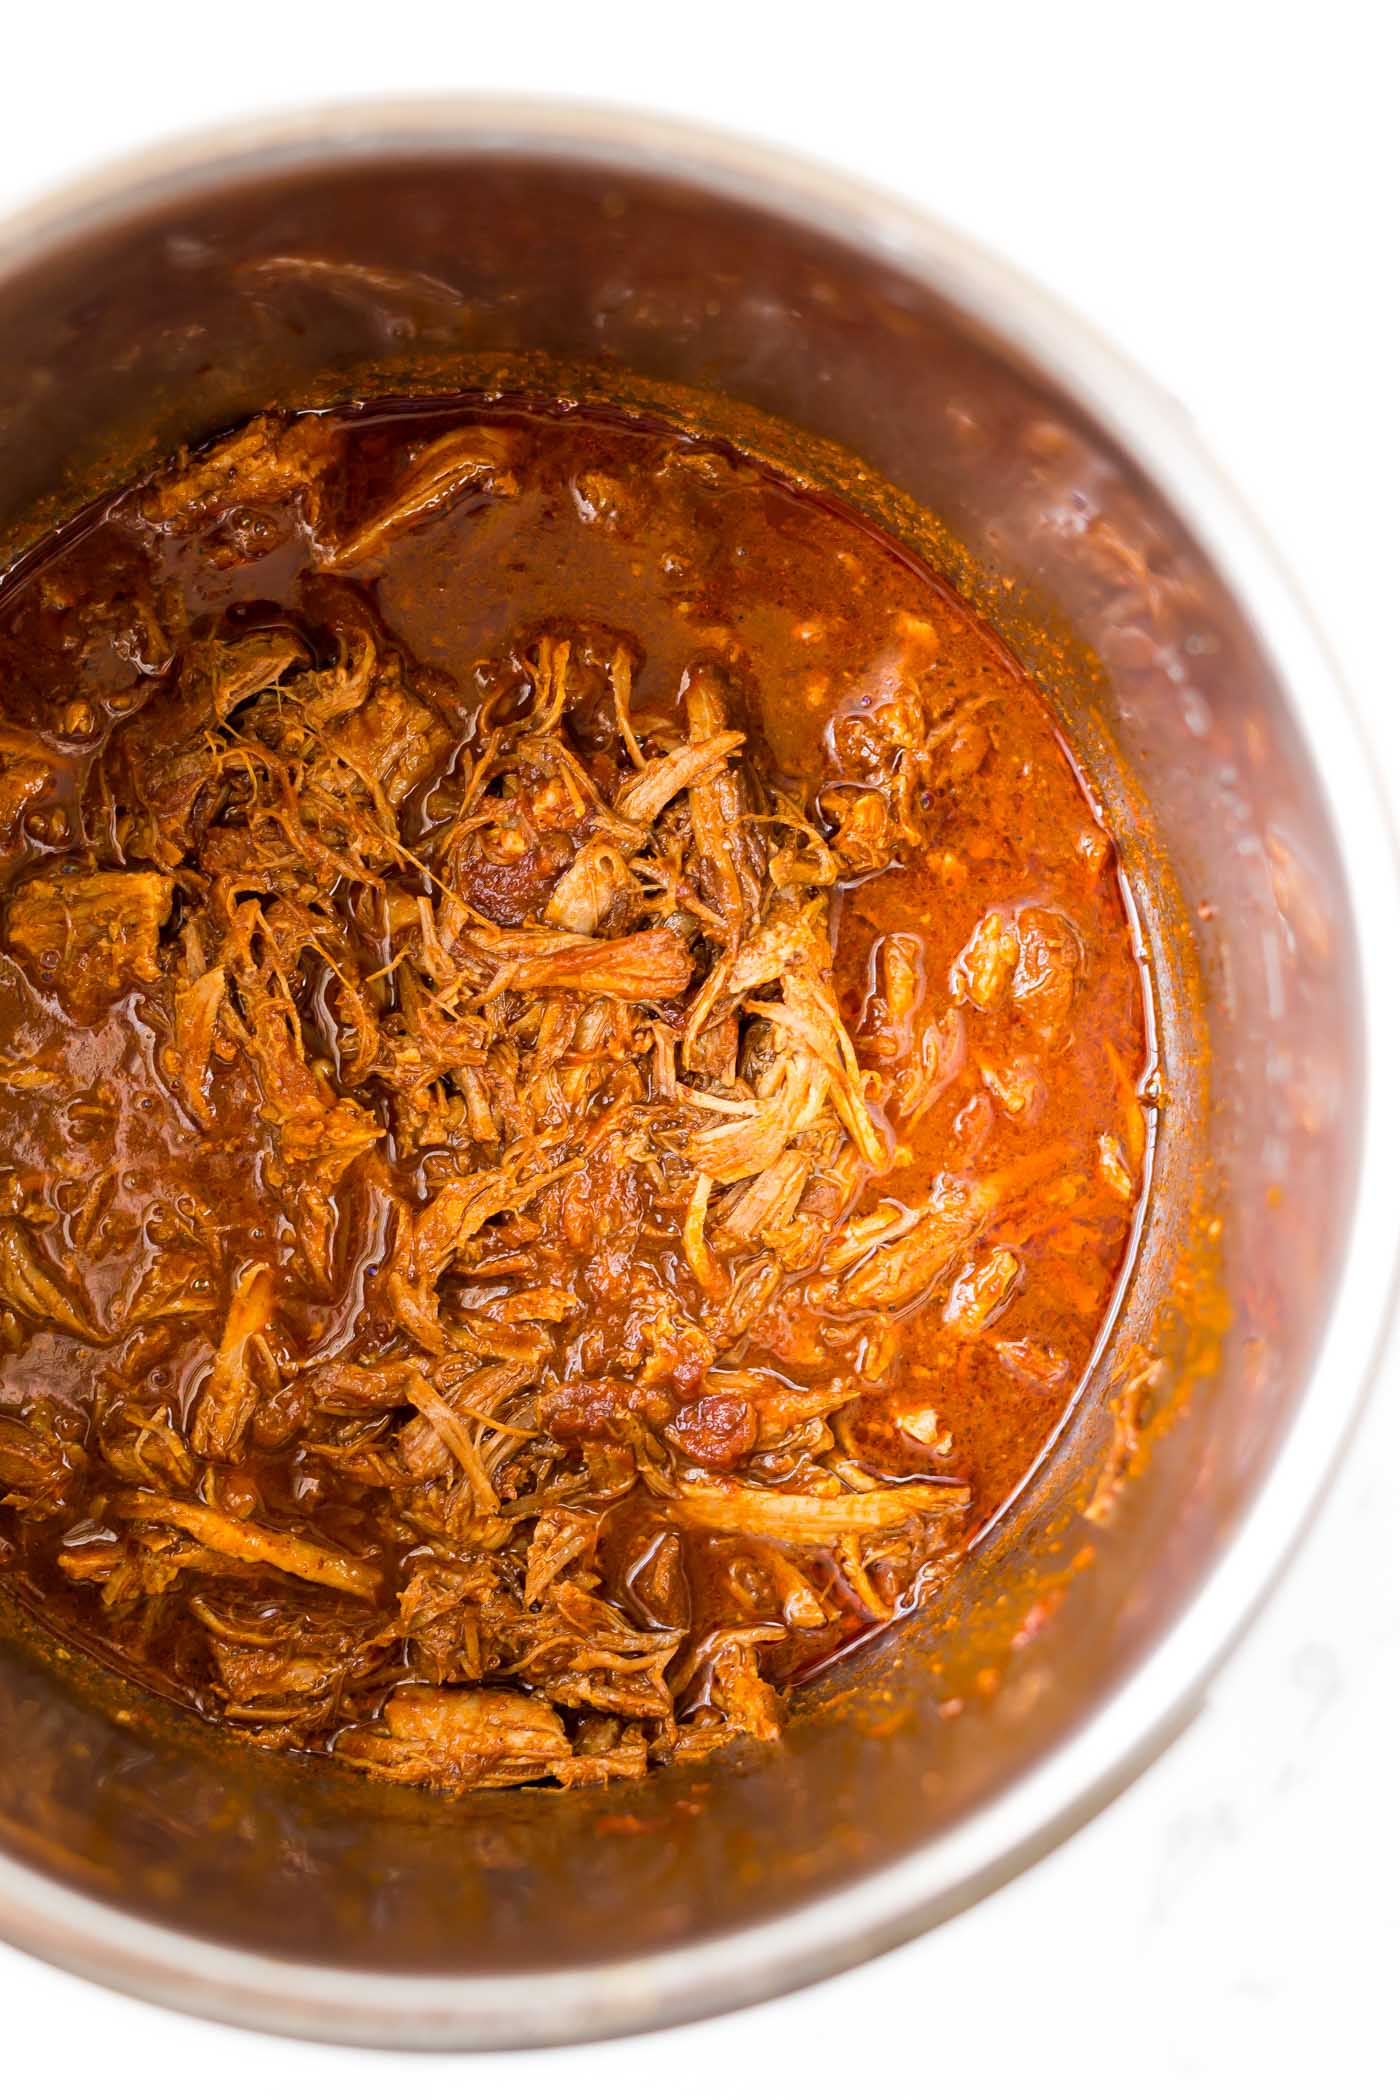 BBQ pulled pork in instant pot